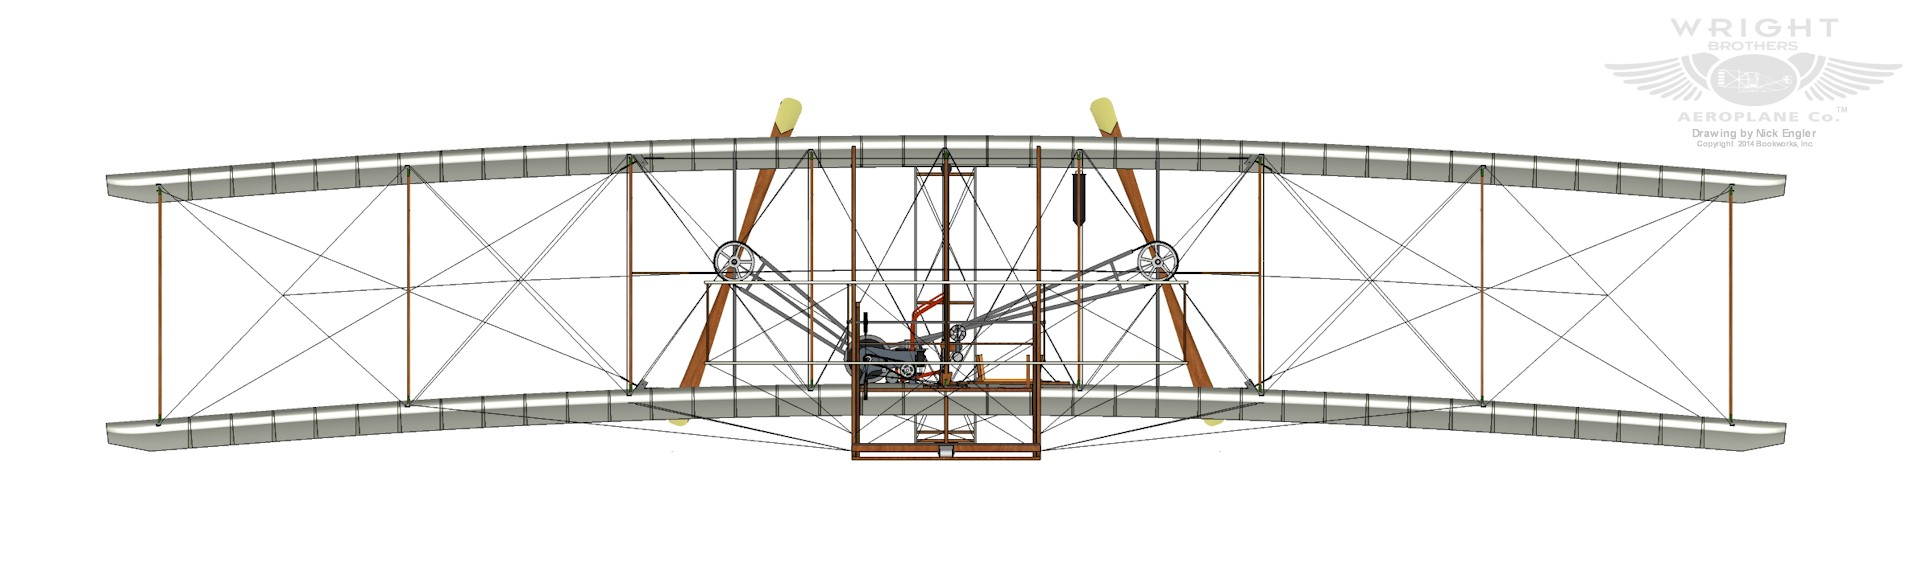 Isometric front view of 1903 wright flyer